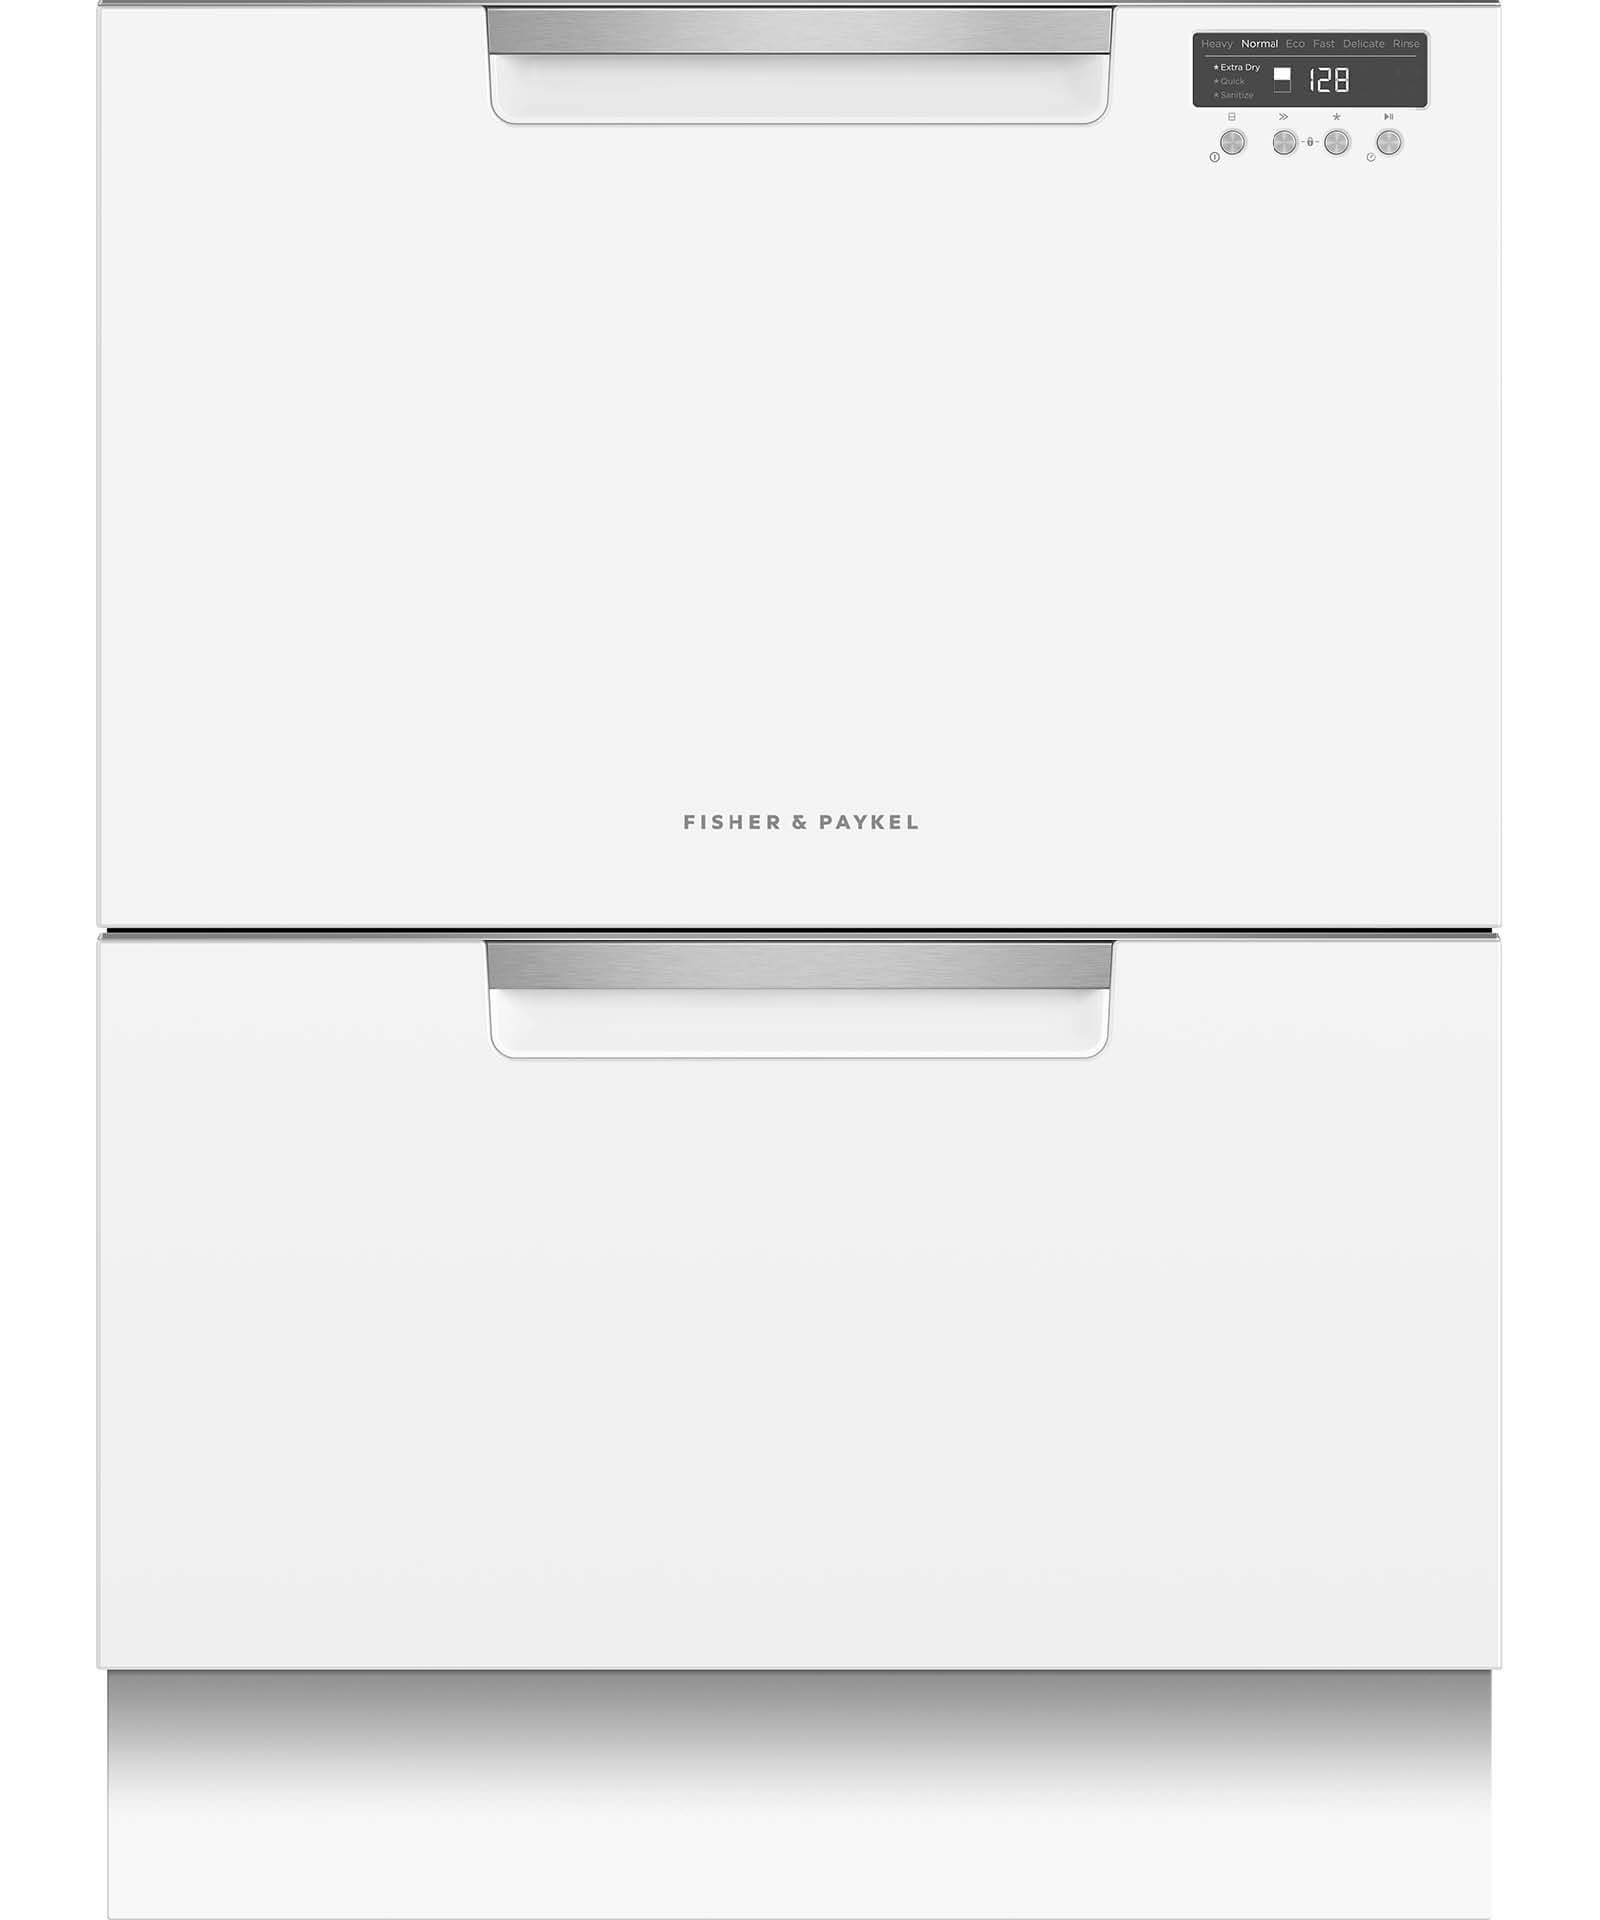 Fisher and Paykel DD60DCW9 Dishdrawer Dishwasher under $1000. Doug Smith Spares